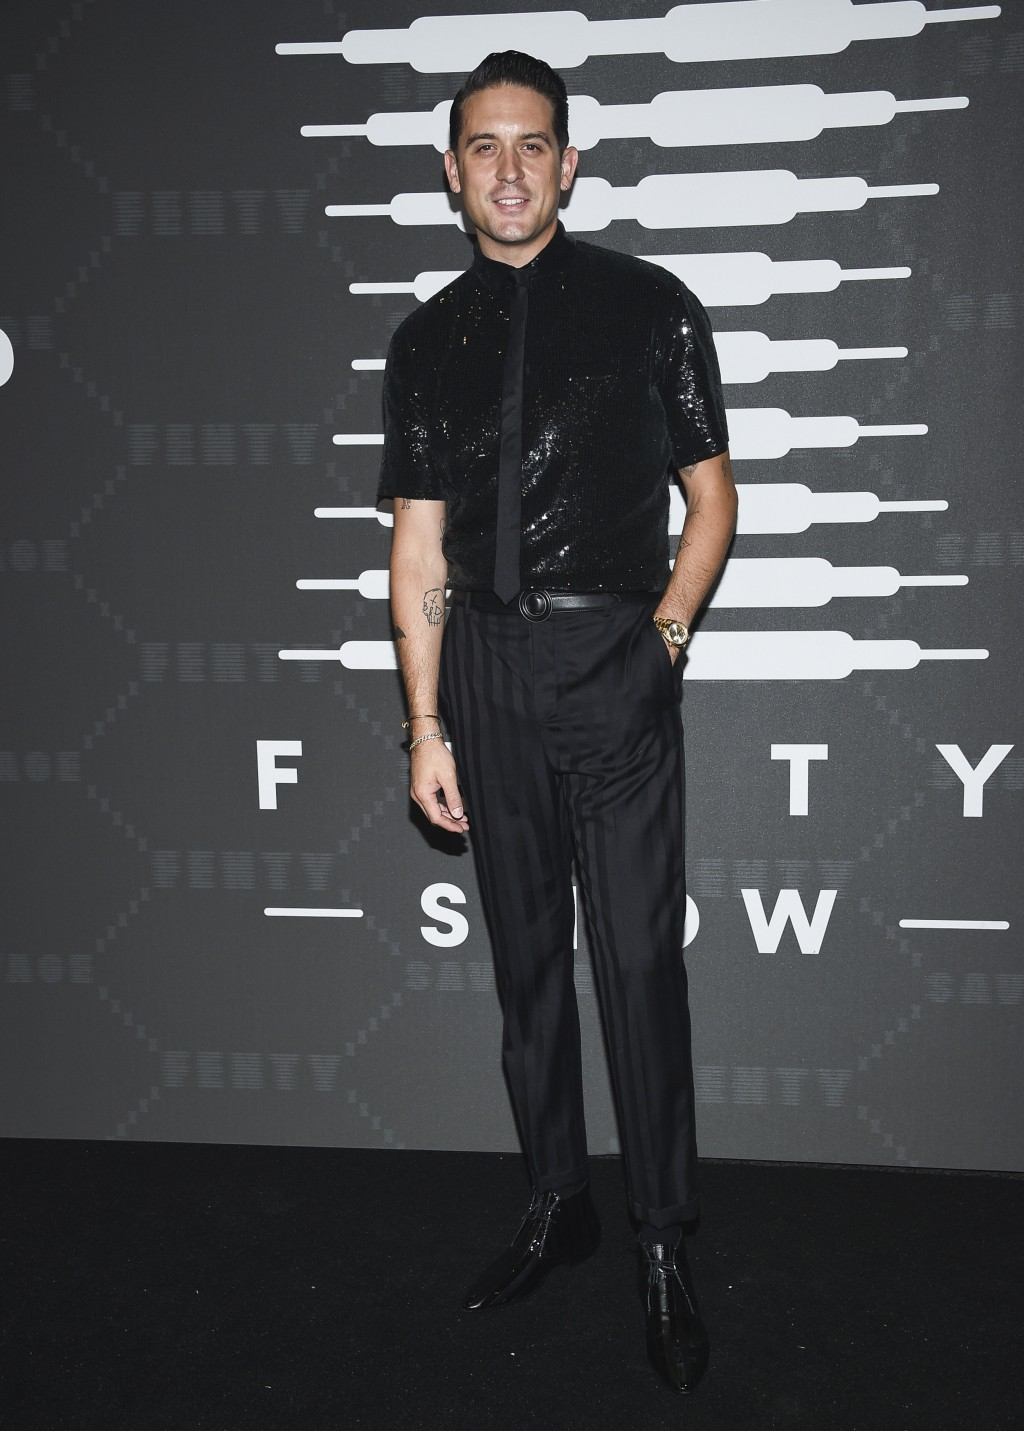 Rapper G-Eazy attends the Spring/Summer 2020 Savage X Fenty show, presented by Amazon Prime, at the Barclays Center on Tuesday, Sept, 10, 2019, in New